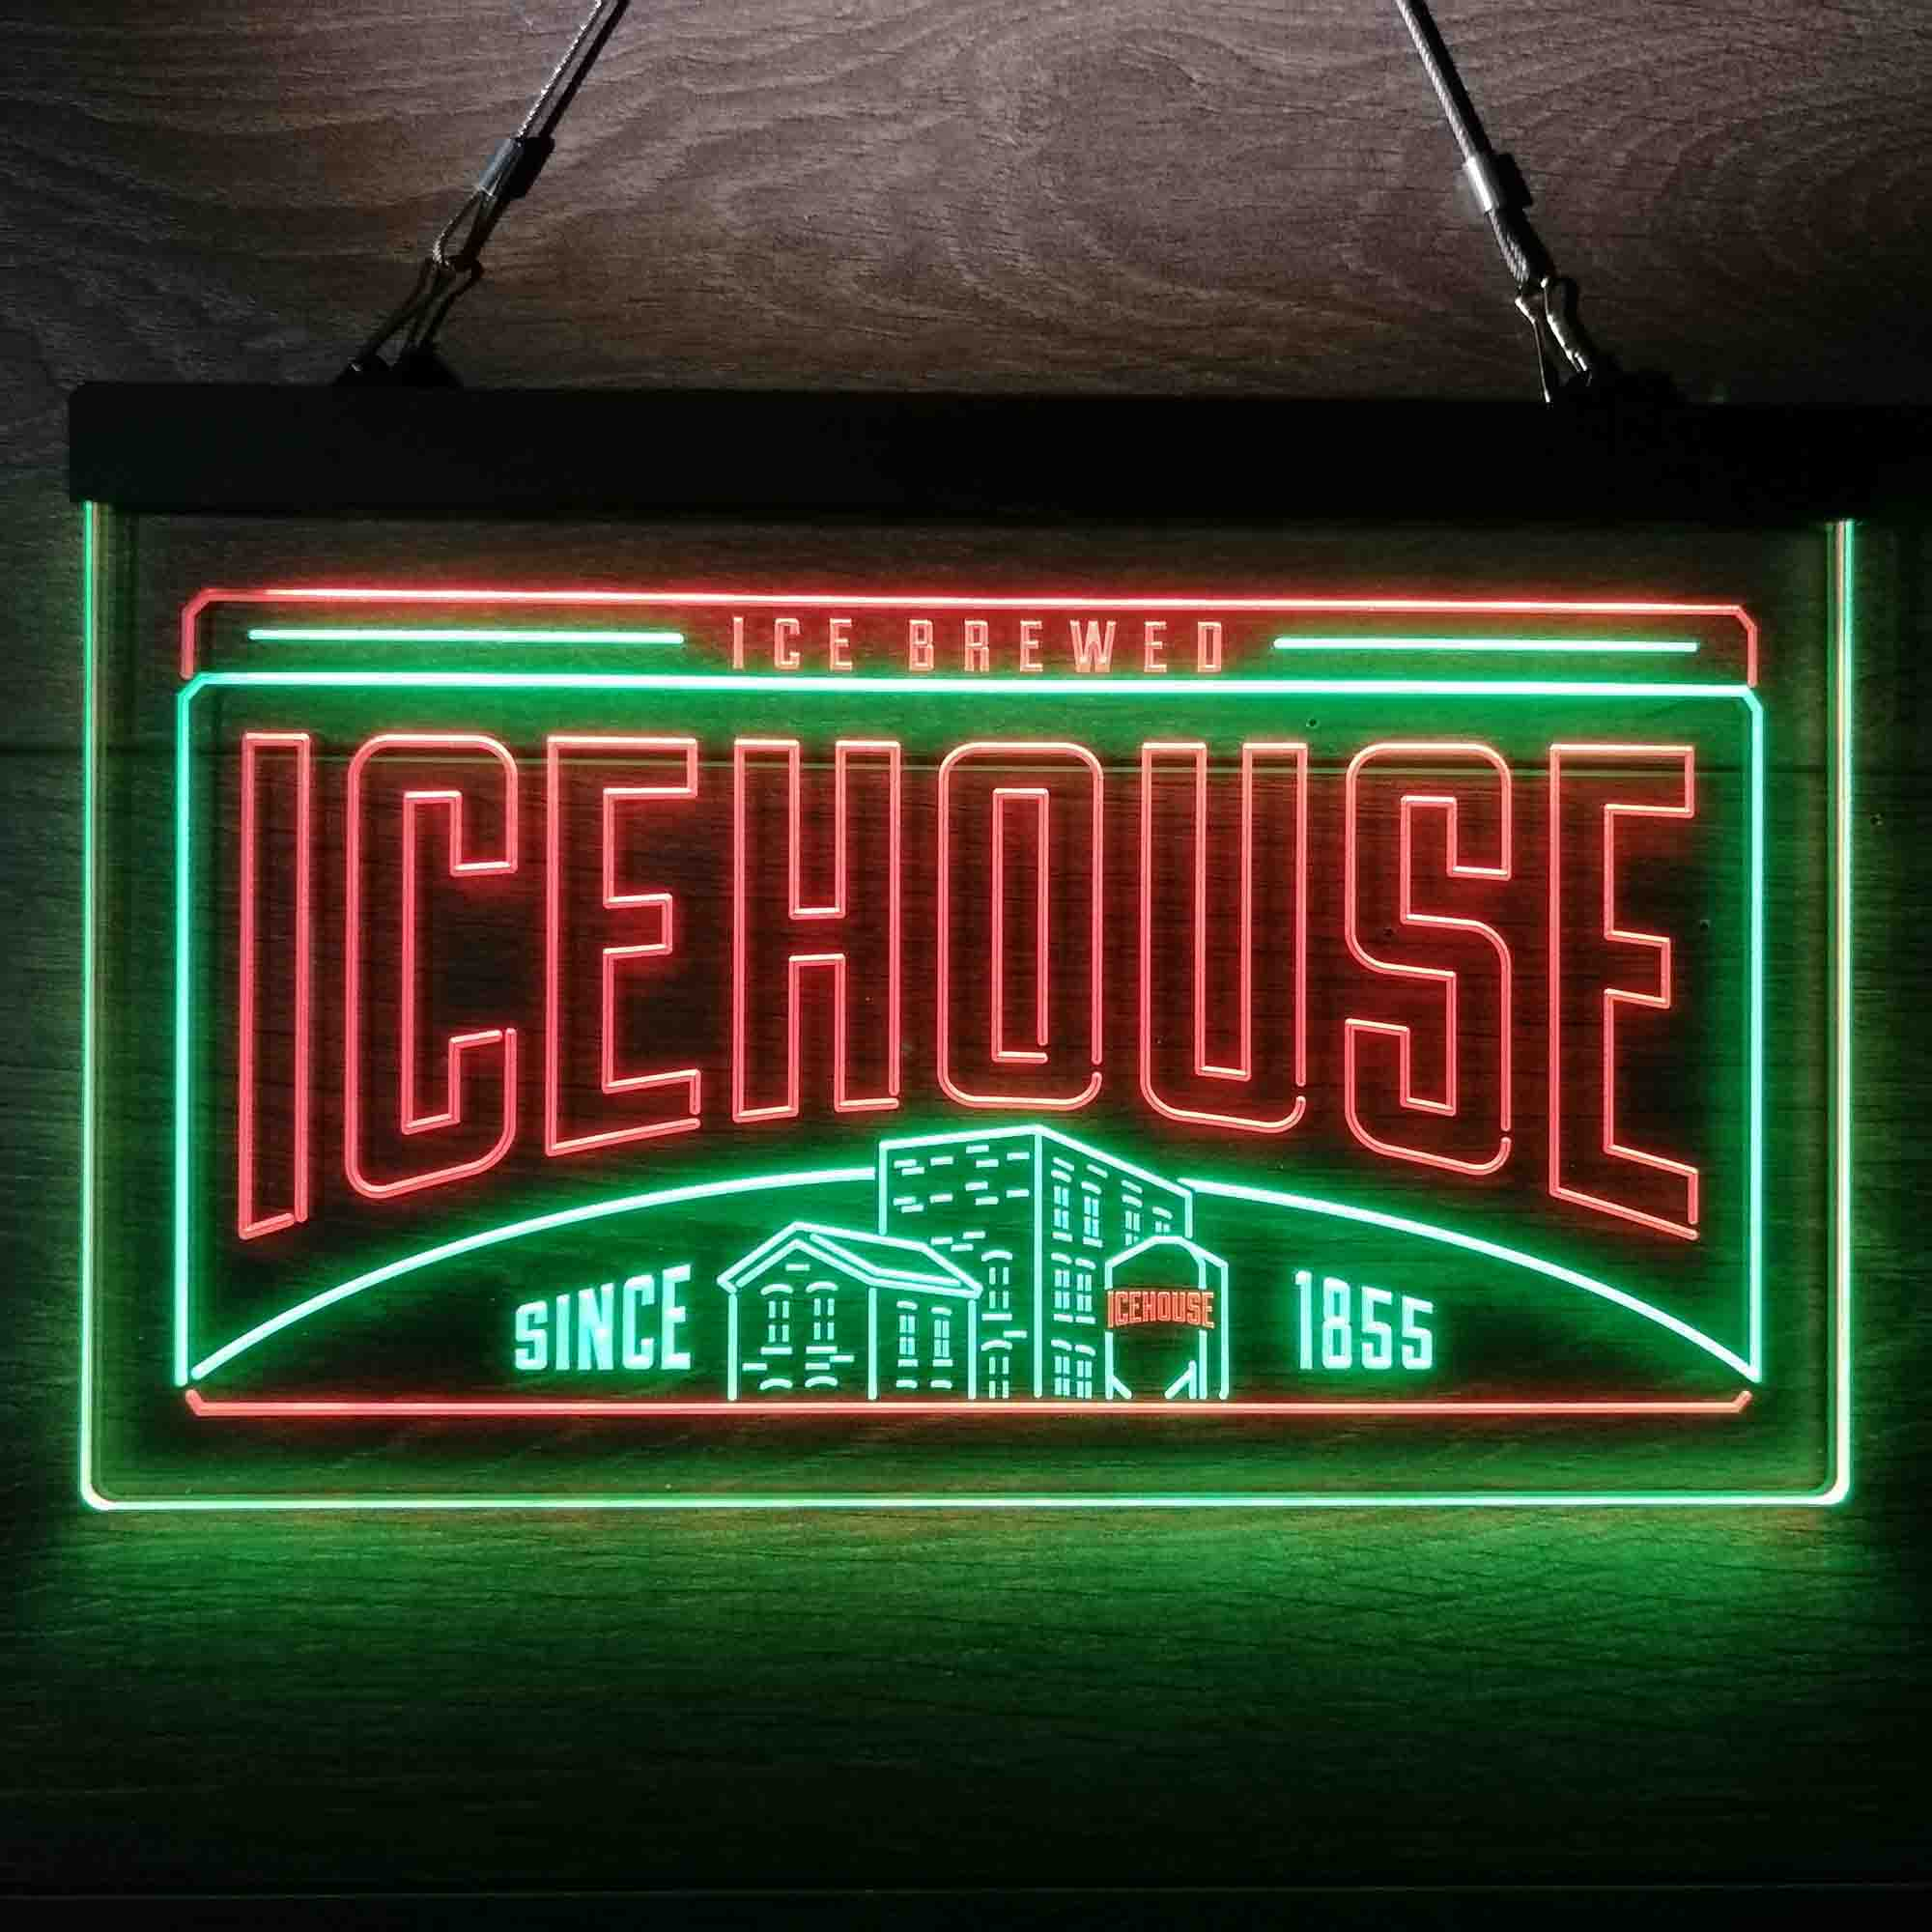 Icehouse Brewing Co. Neon-Like LED Sign